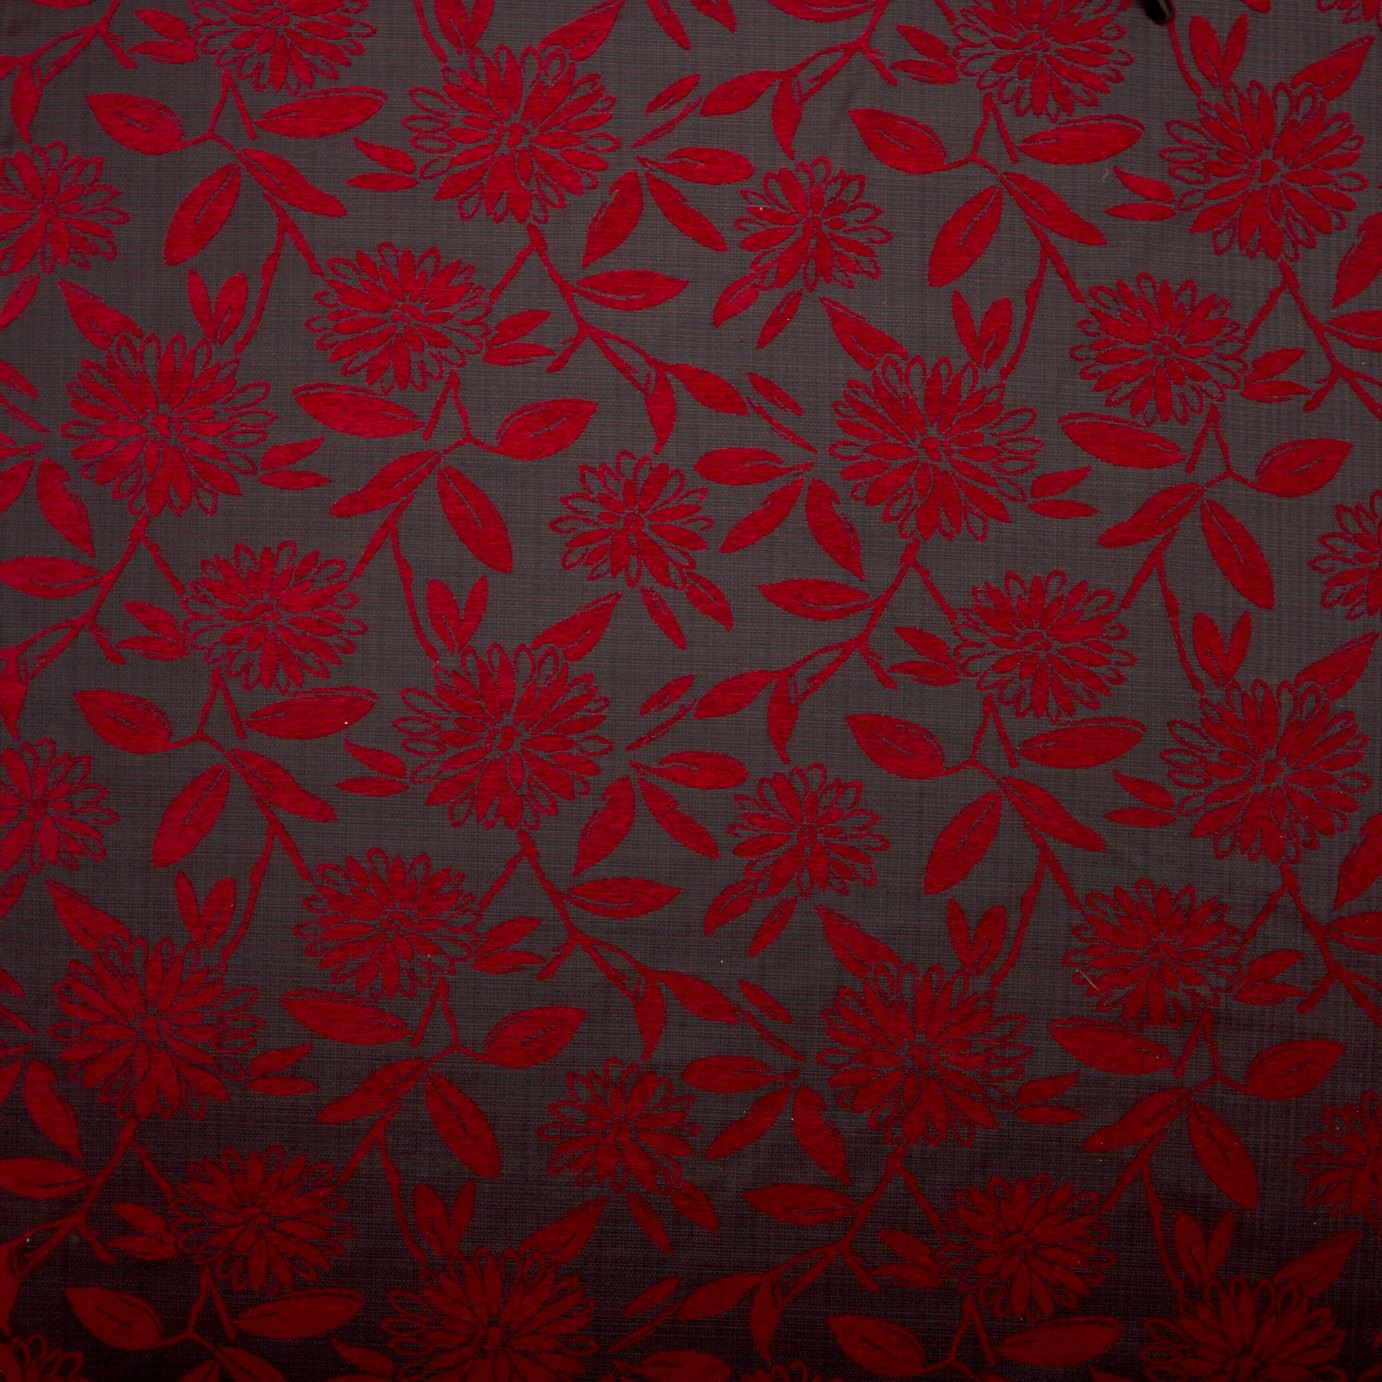 Luxury Soft Floral Swirl Chenille Flower Upholstery Sofa Curtain Fabric Material